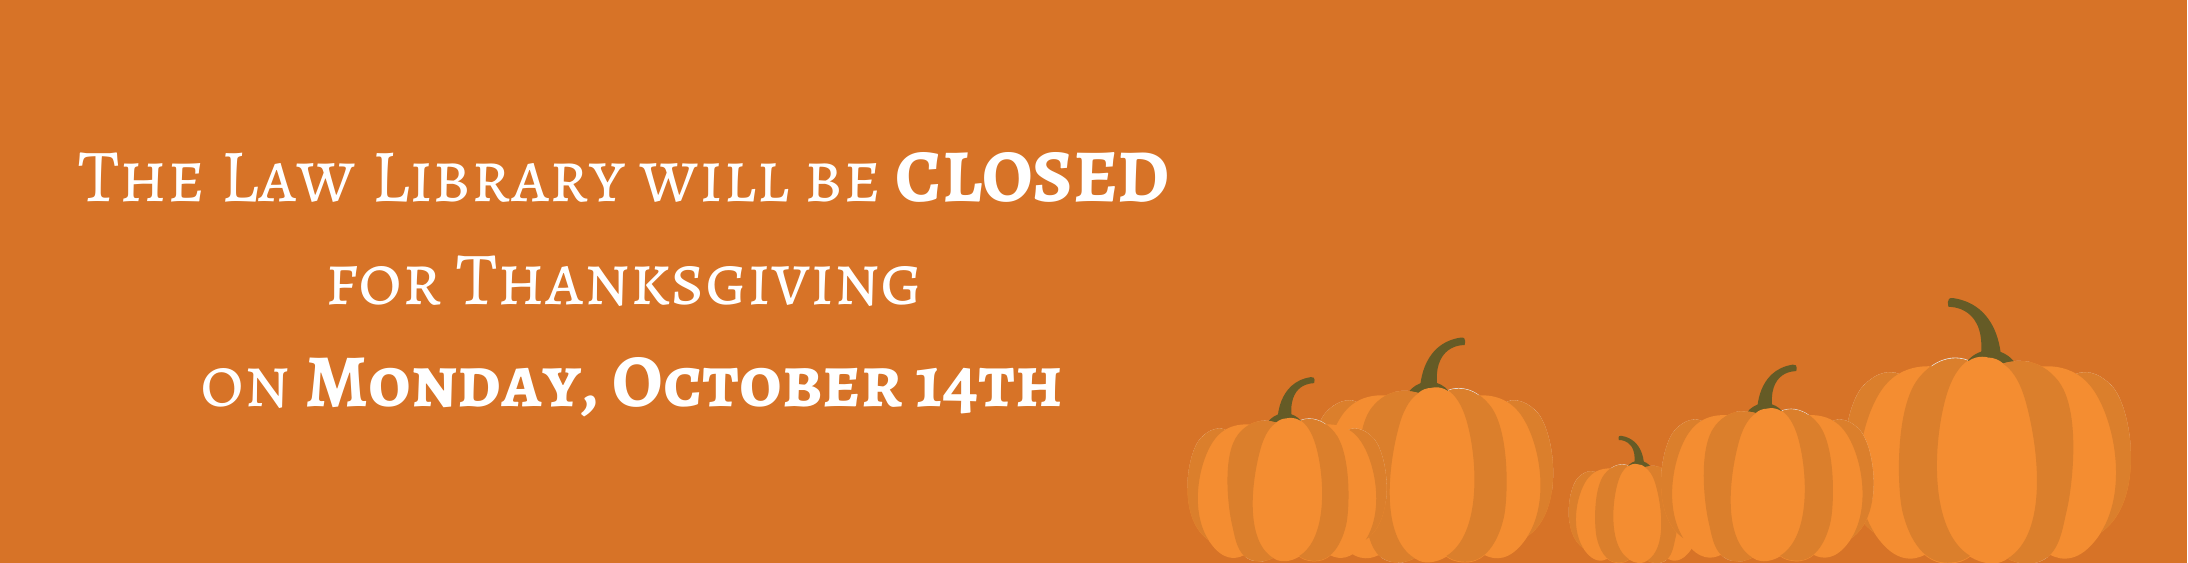 Closed Thanksgiving 2019